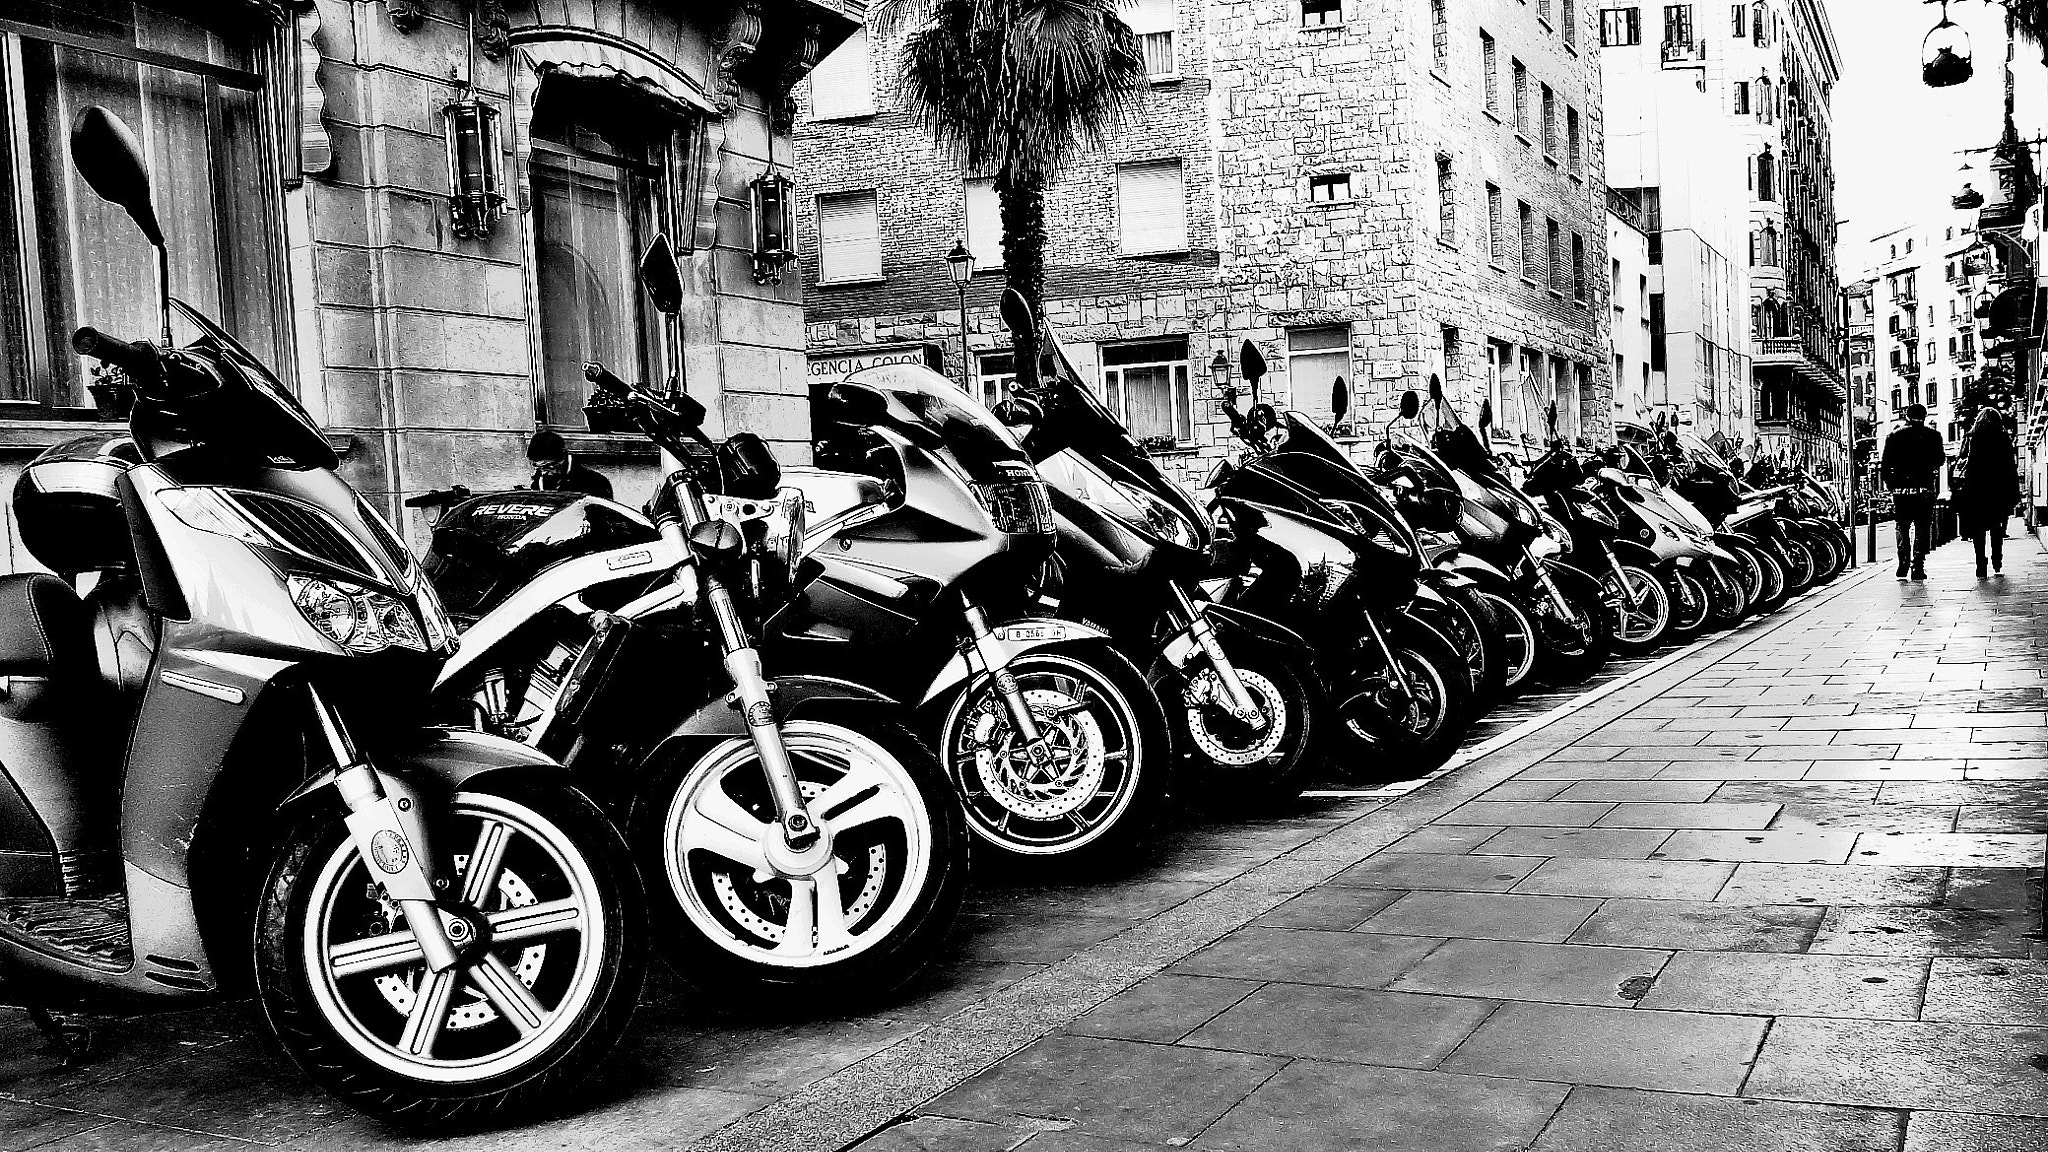 Photograph Hilera de motos by Joan Oliveras on 500px